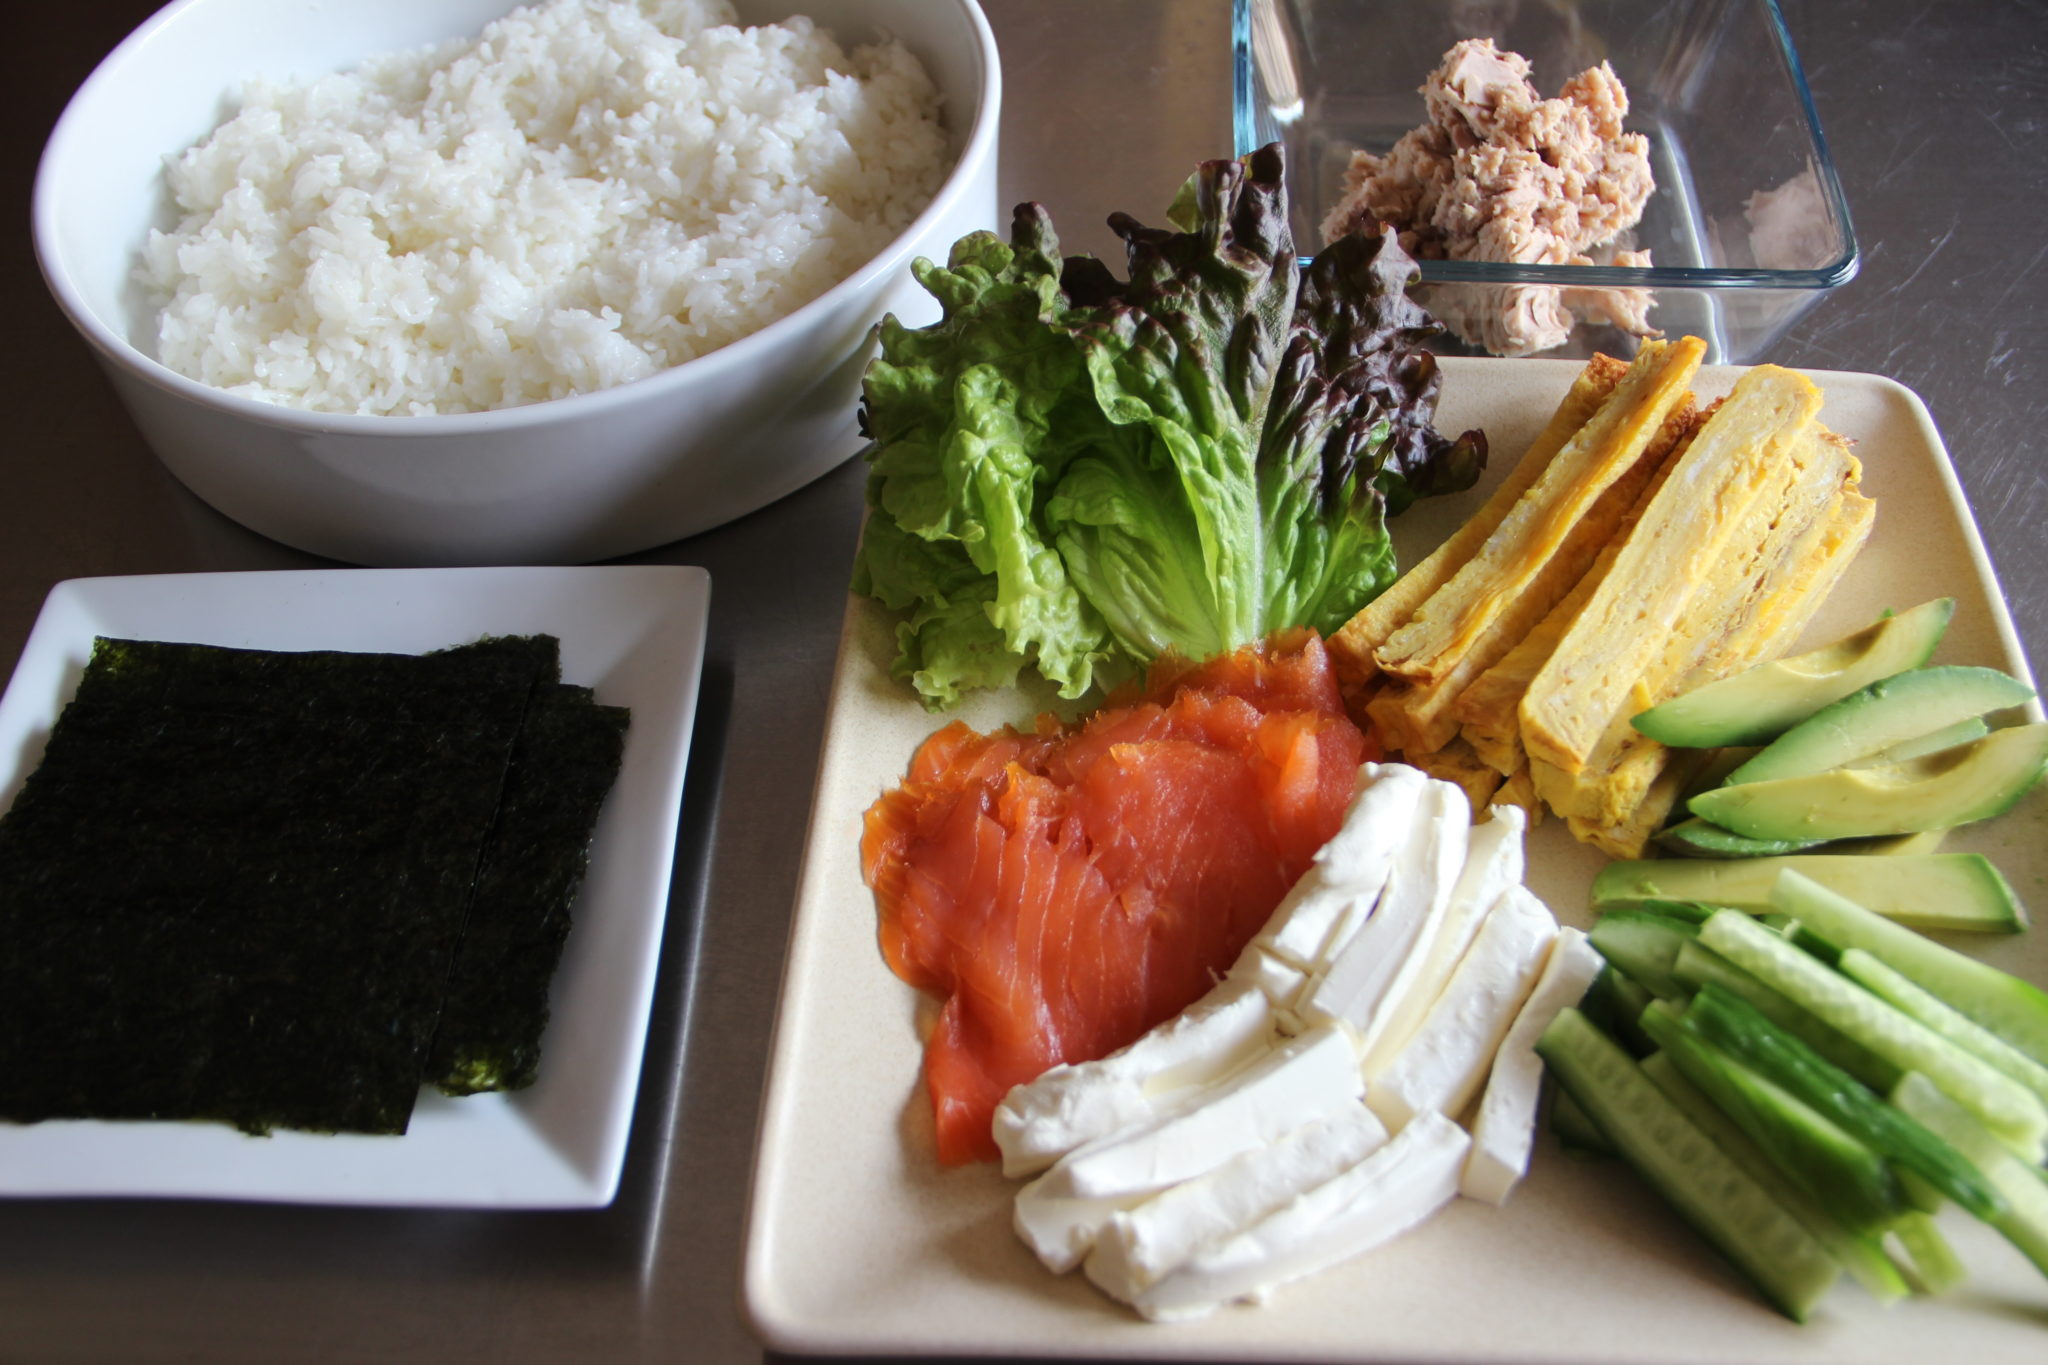 Pics for sushi ingredients recipe for Asian cuisine ingredients